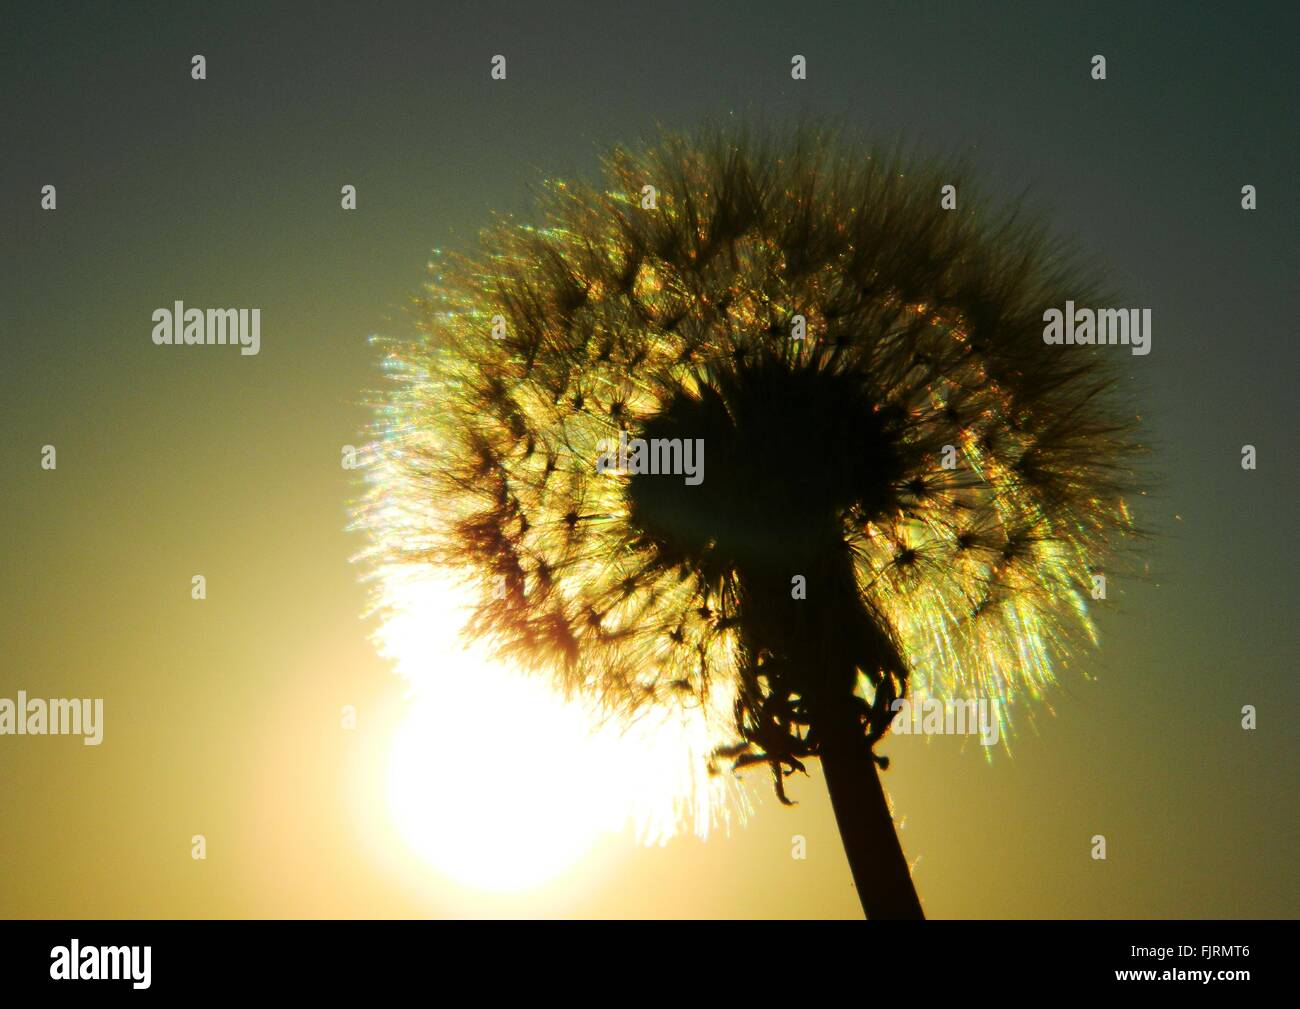 Low Angle View Of Silhouette Dandelion Against Sunset Sky Stock Photo